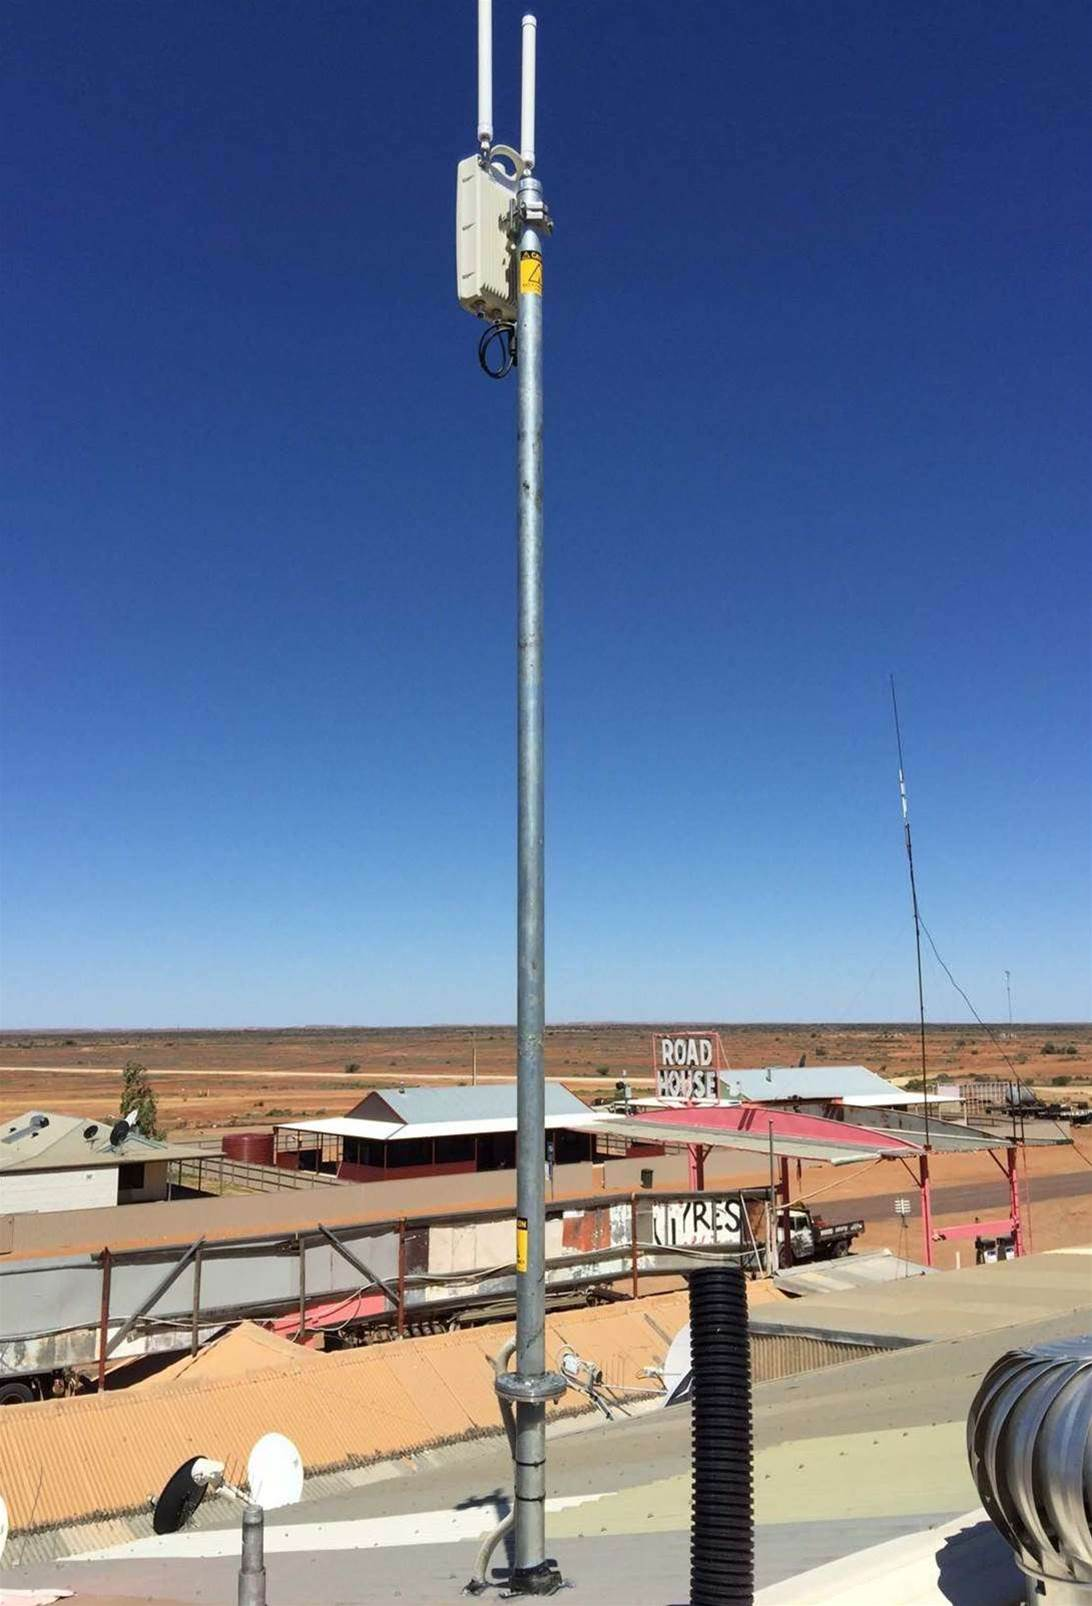 Optus launches 'small cells' for remote mobile coverage